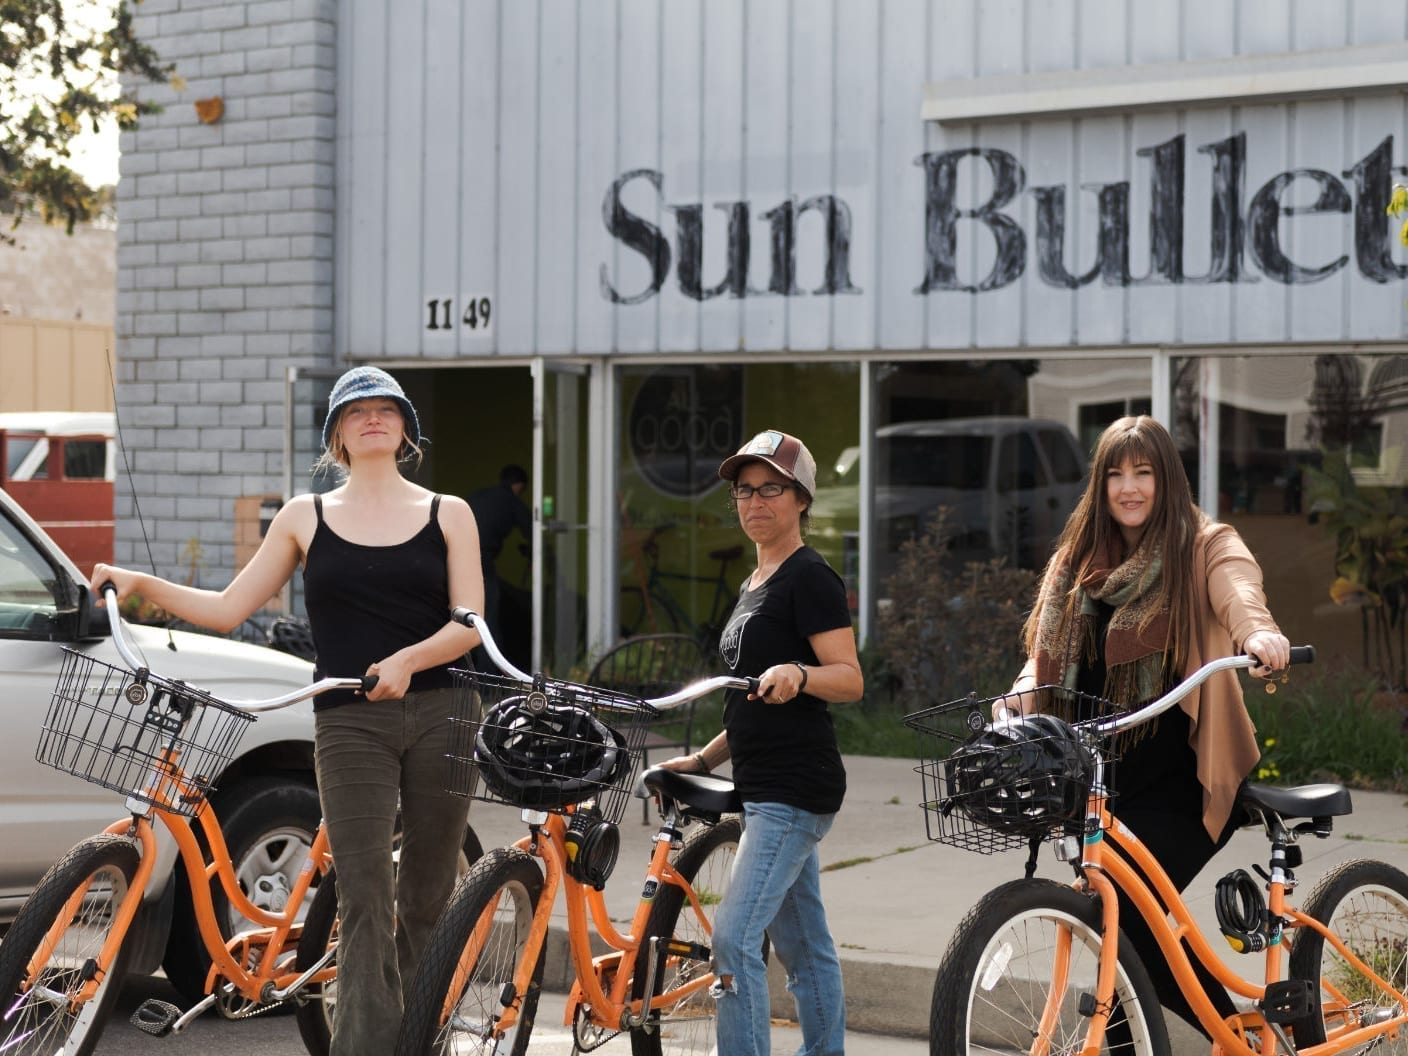 Members of the All Good team standing with matching beach cruiser bikes